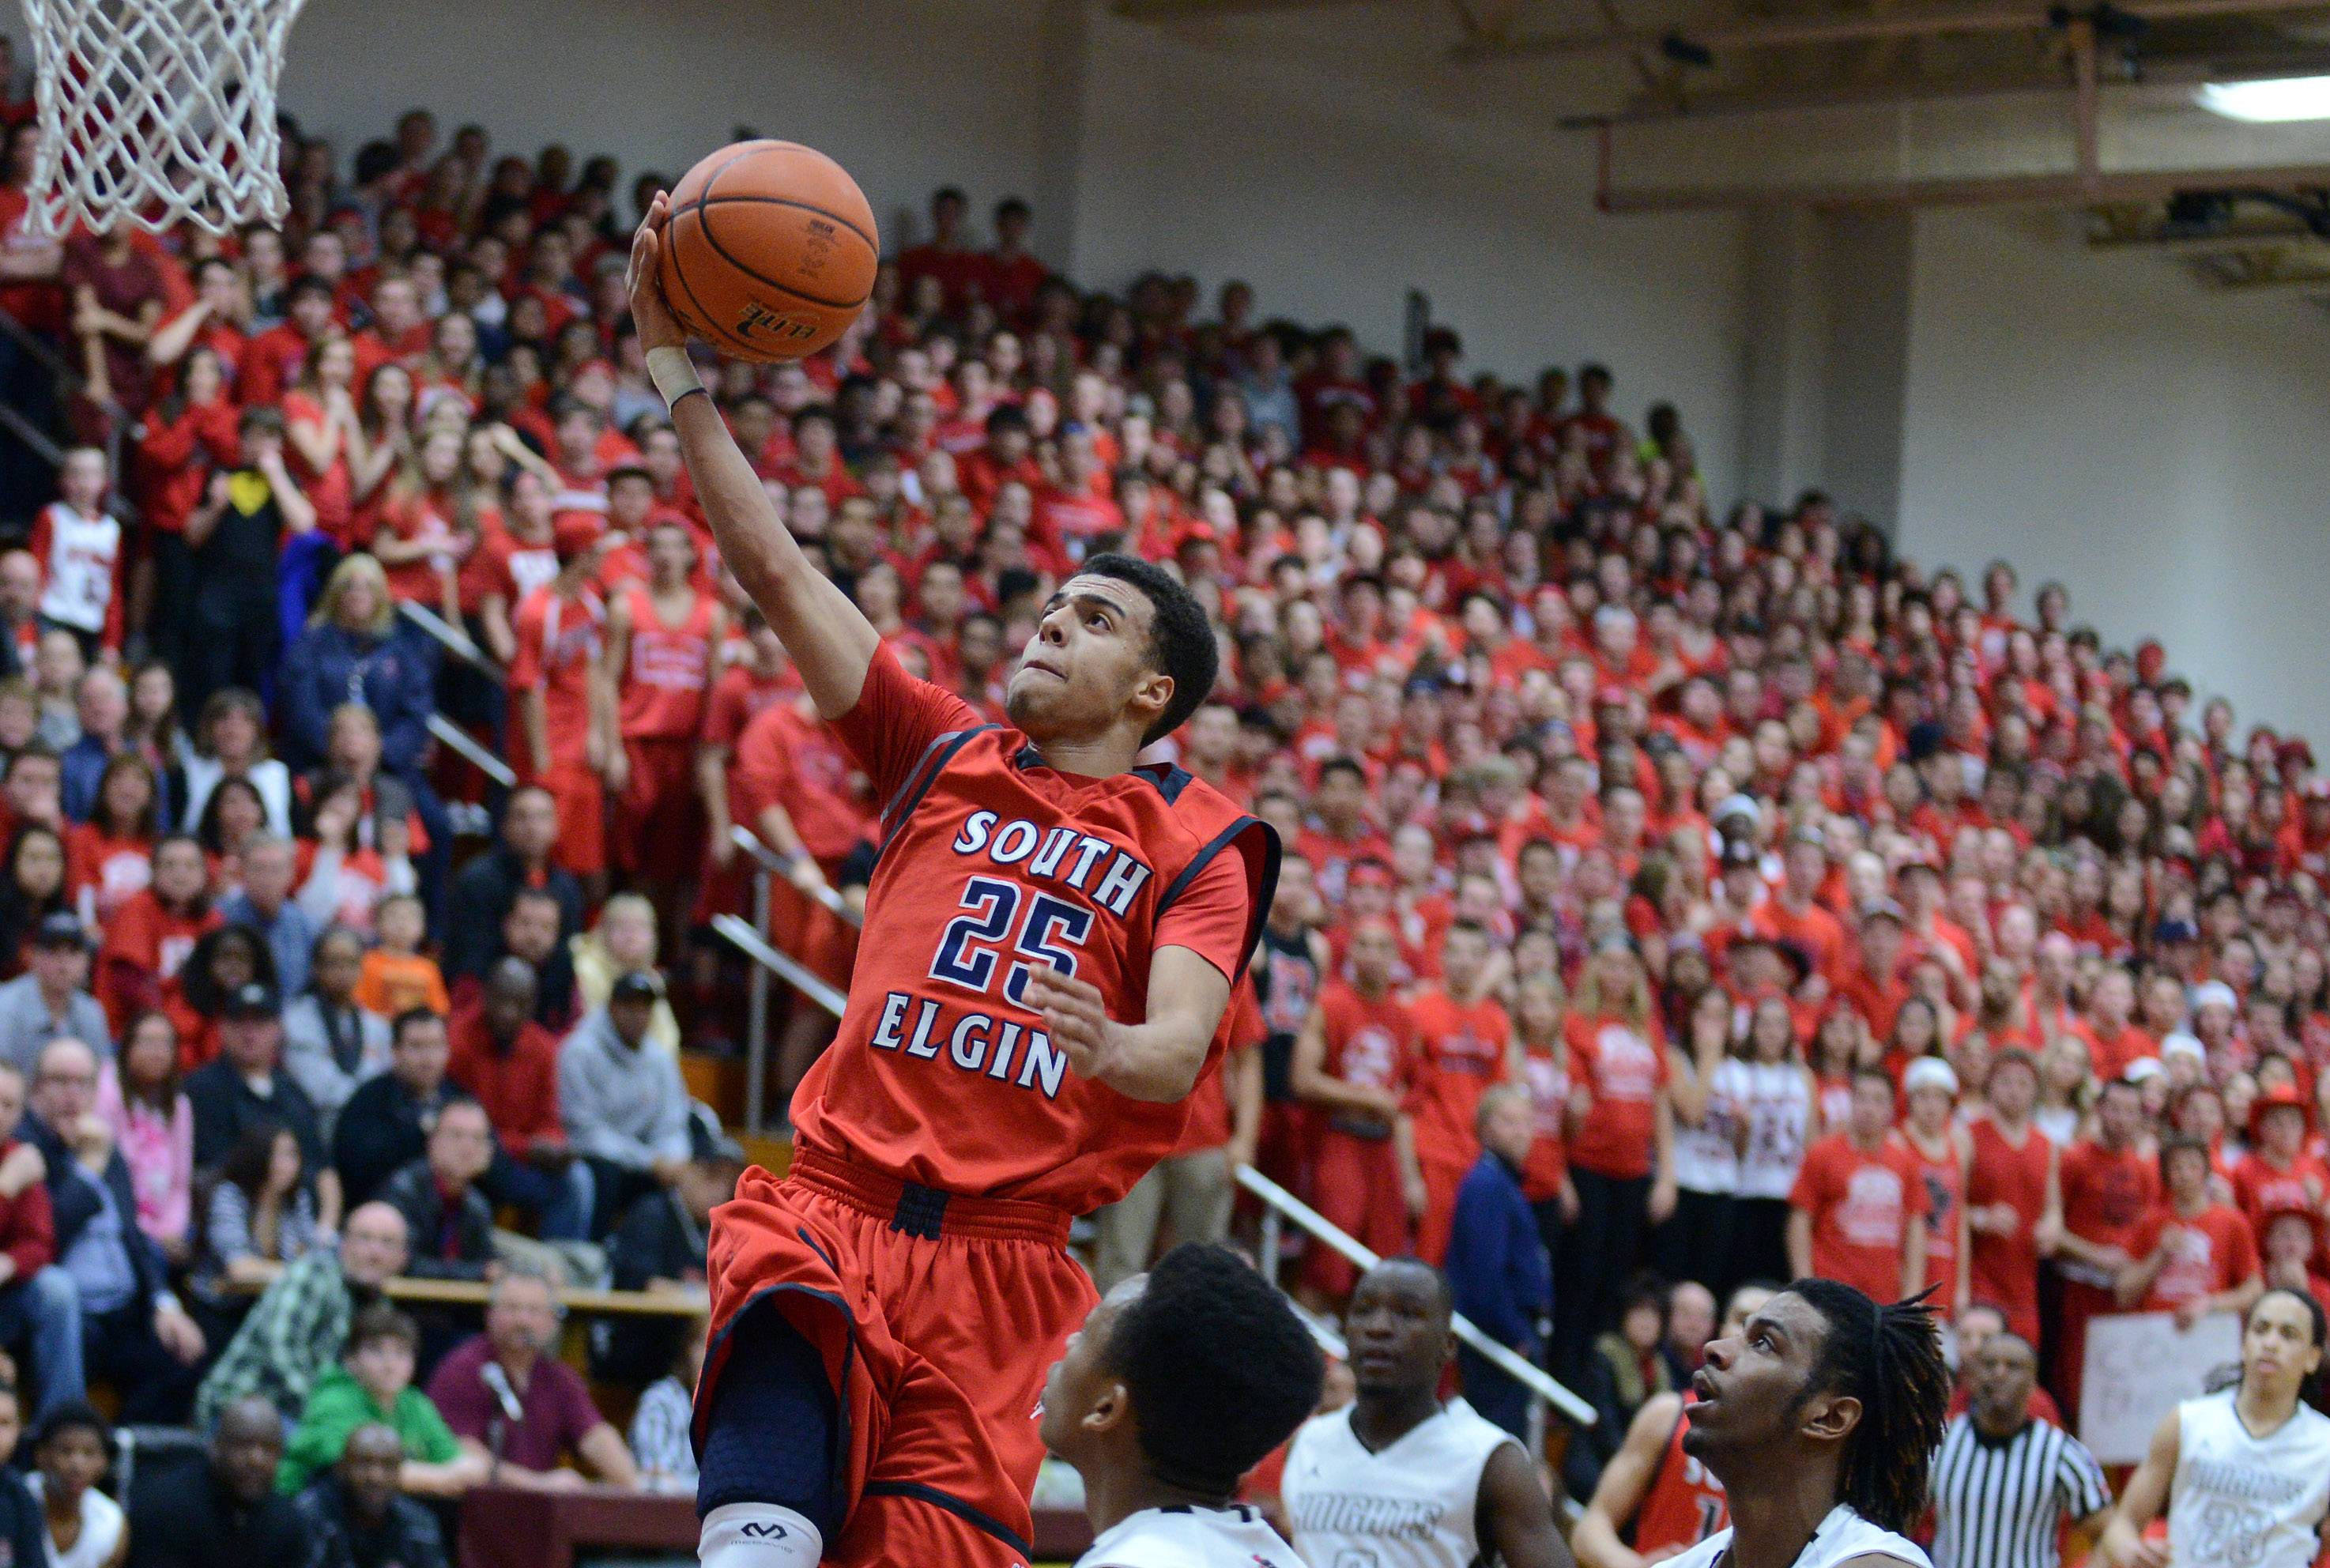 South Elgin's Darius Wells (25) skies above the Rockford Auburn defense to score during Friday's Class 4A Elgin sectional final.